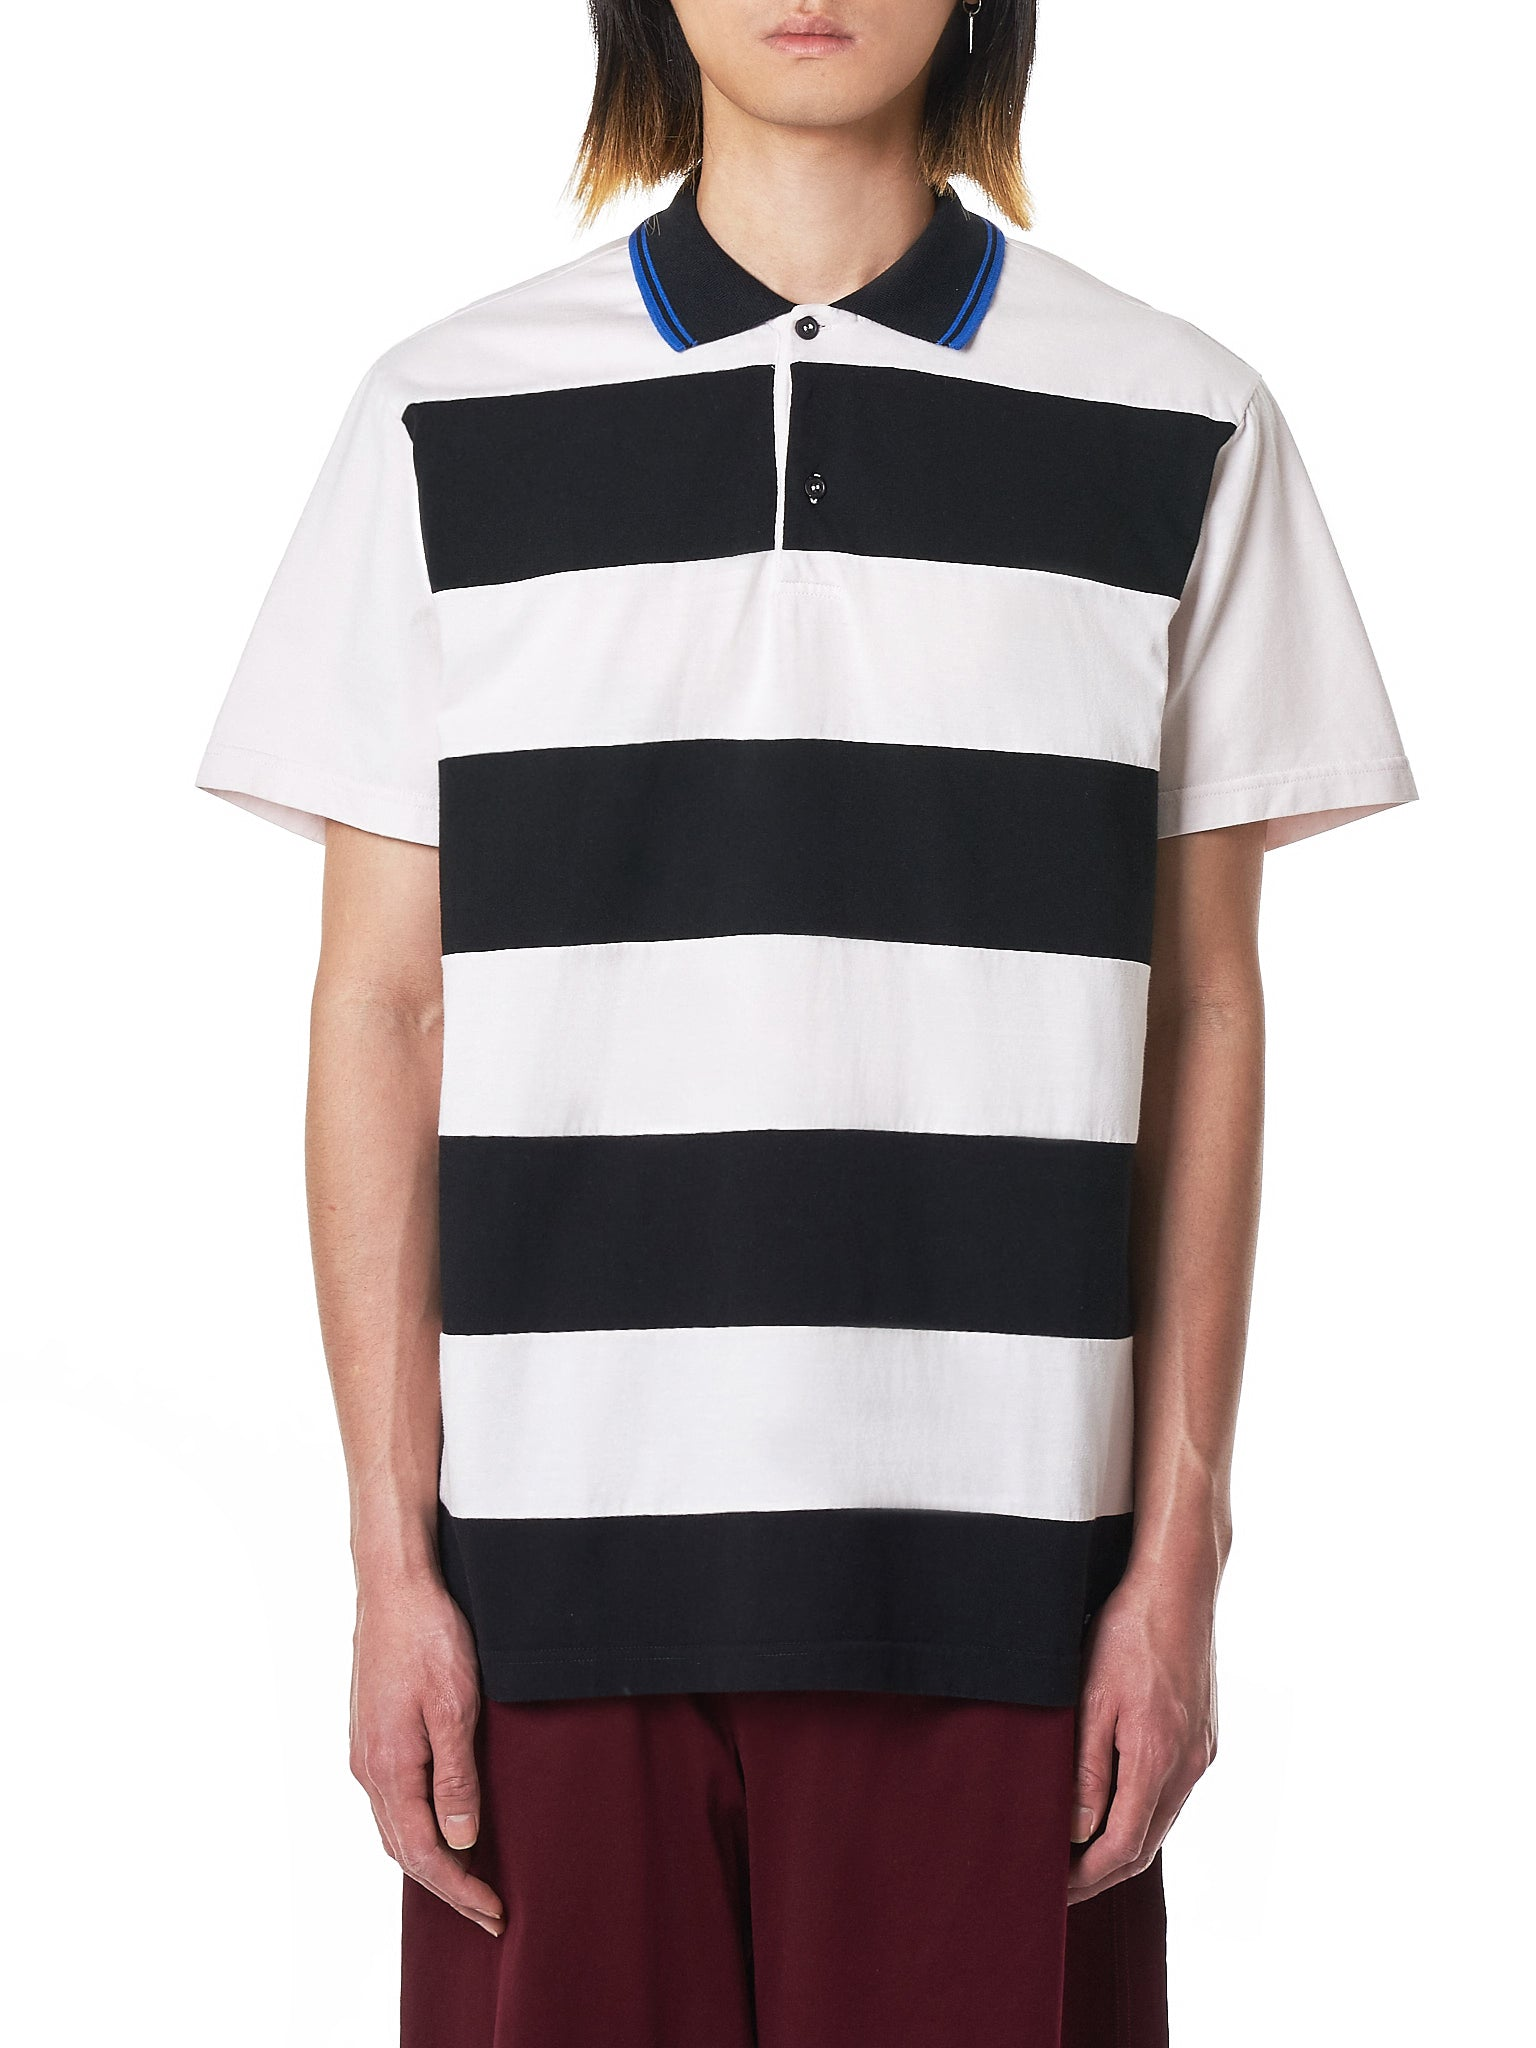 Marni Striped Polo - Hlorenzo Front